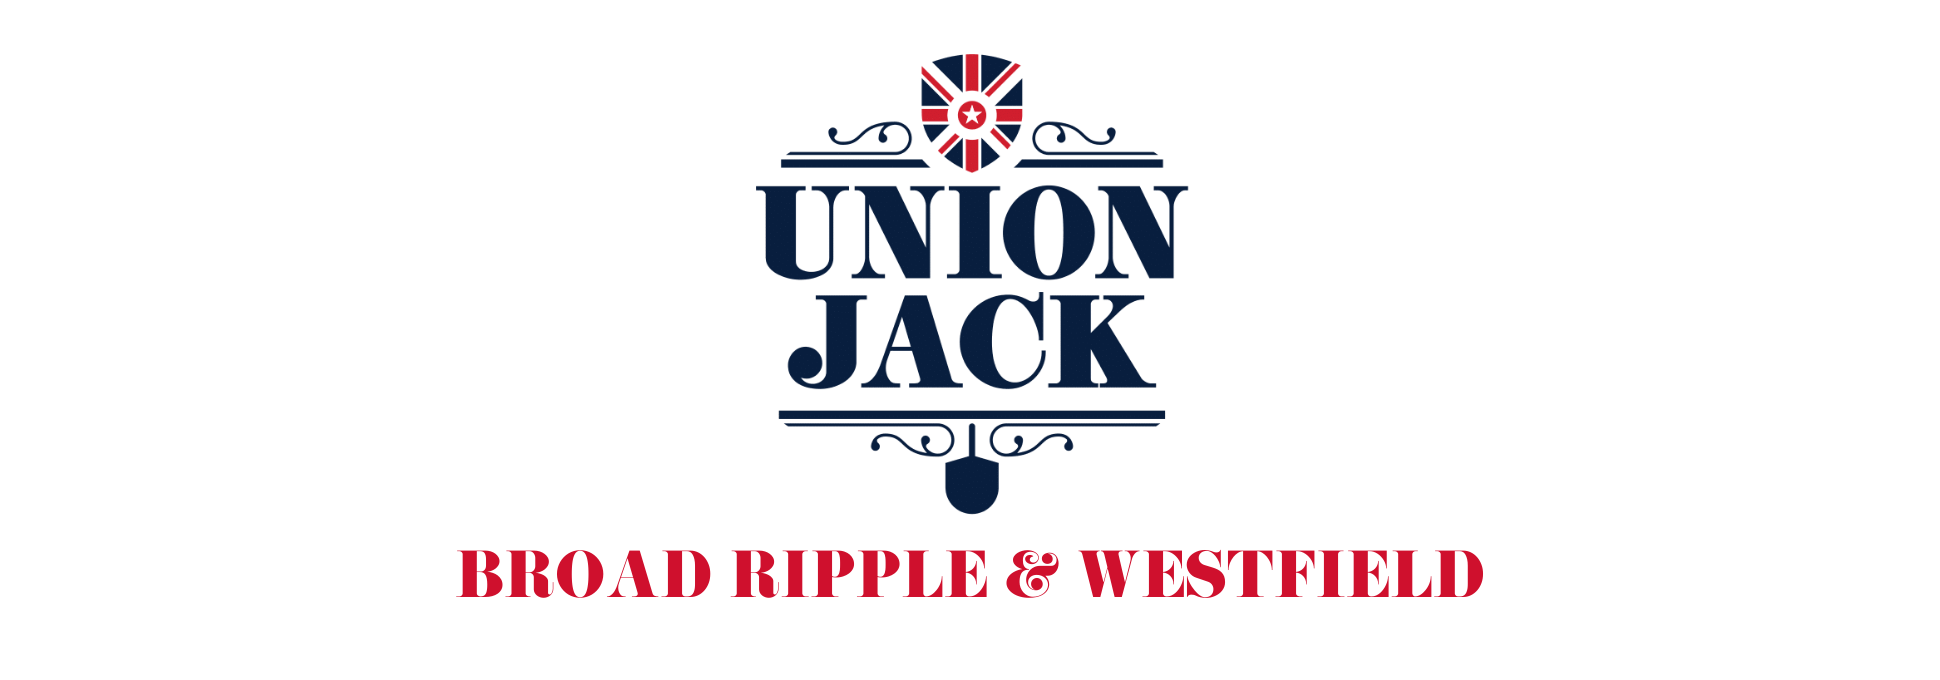 Union Jack Pub - Broad Ripple & Westfield